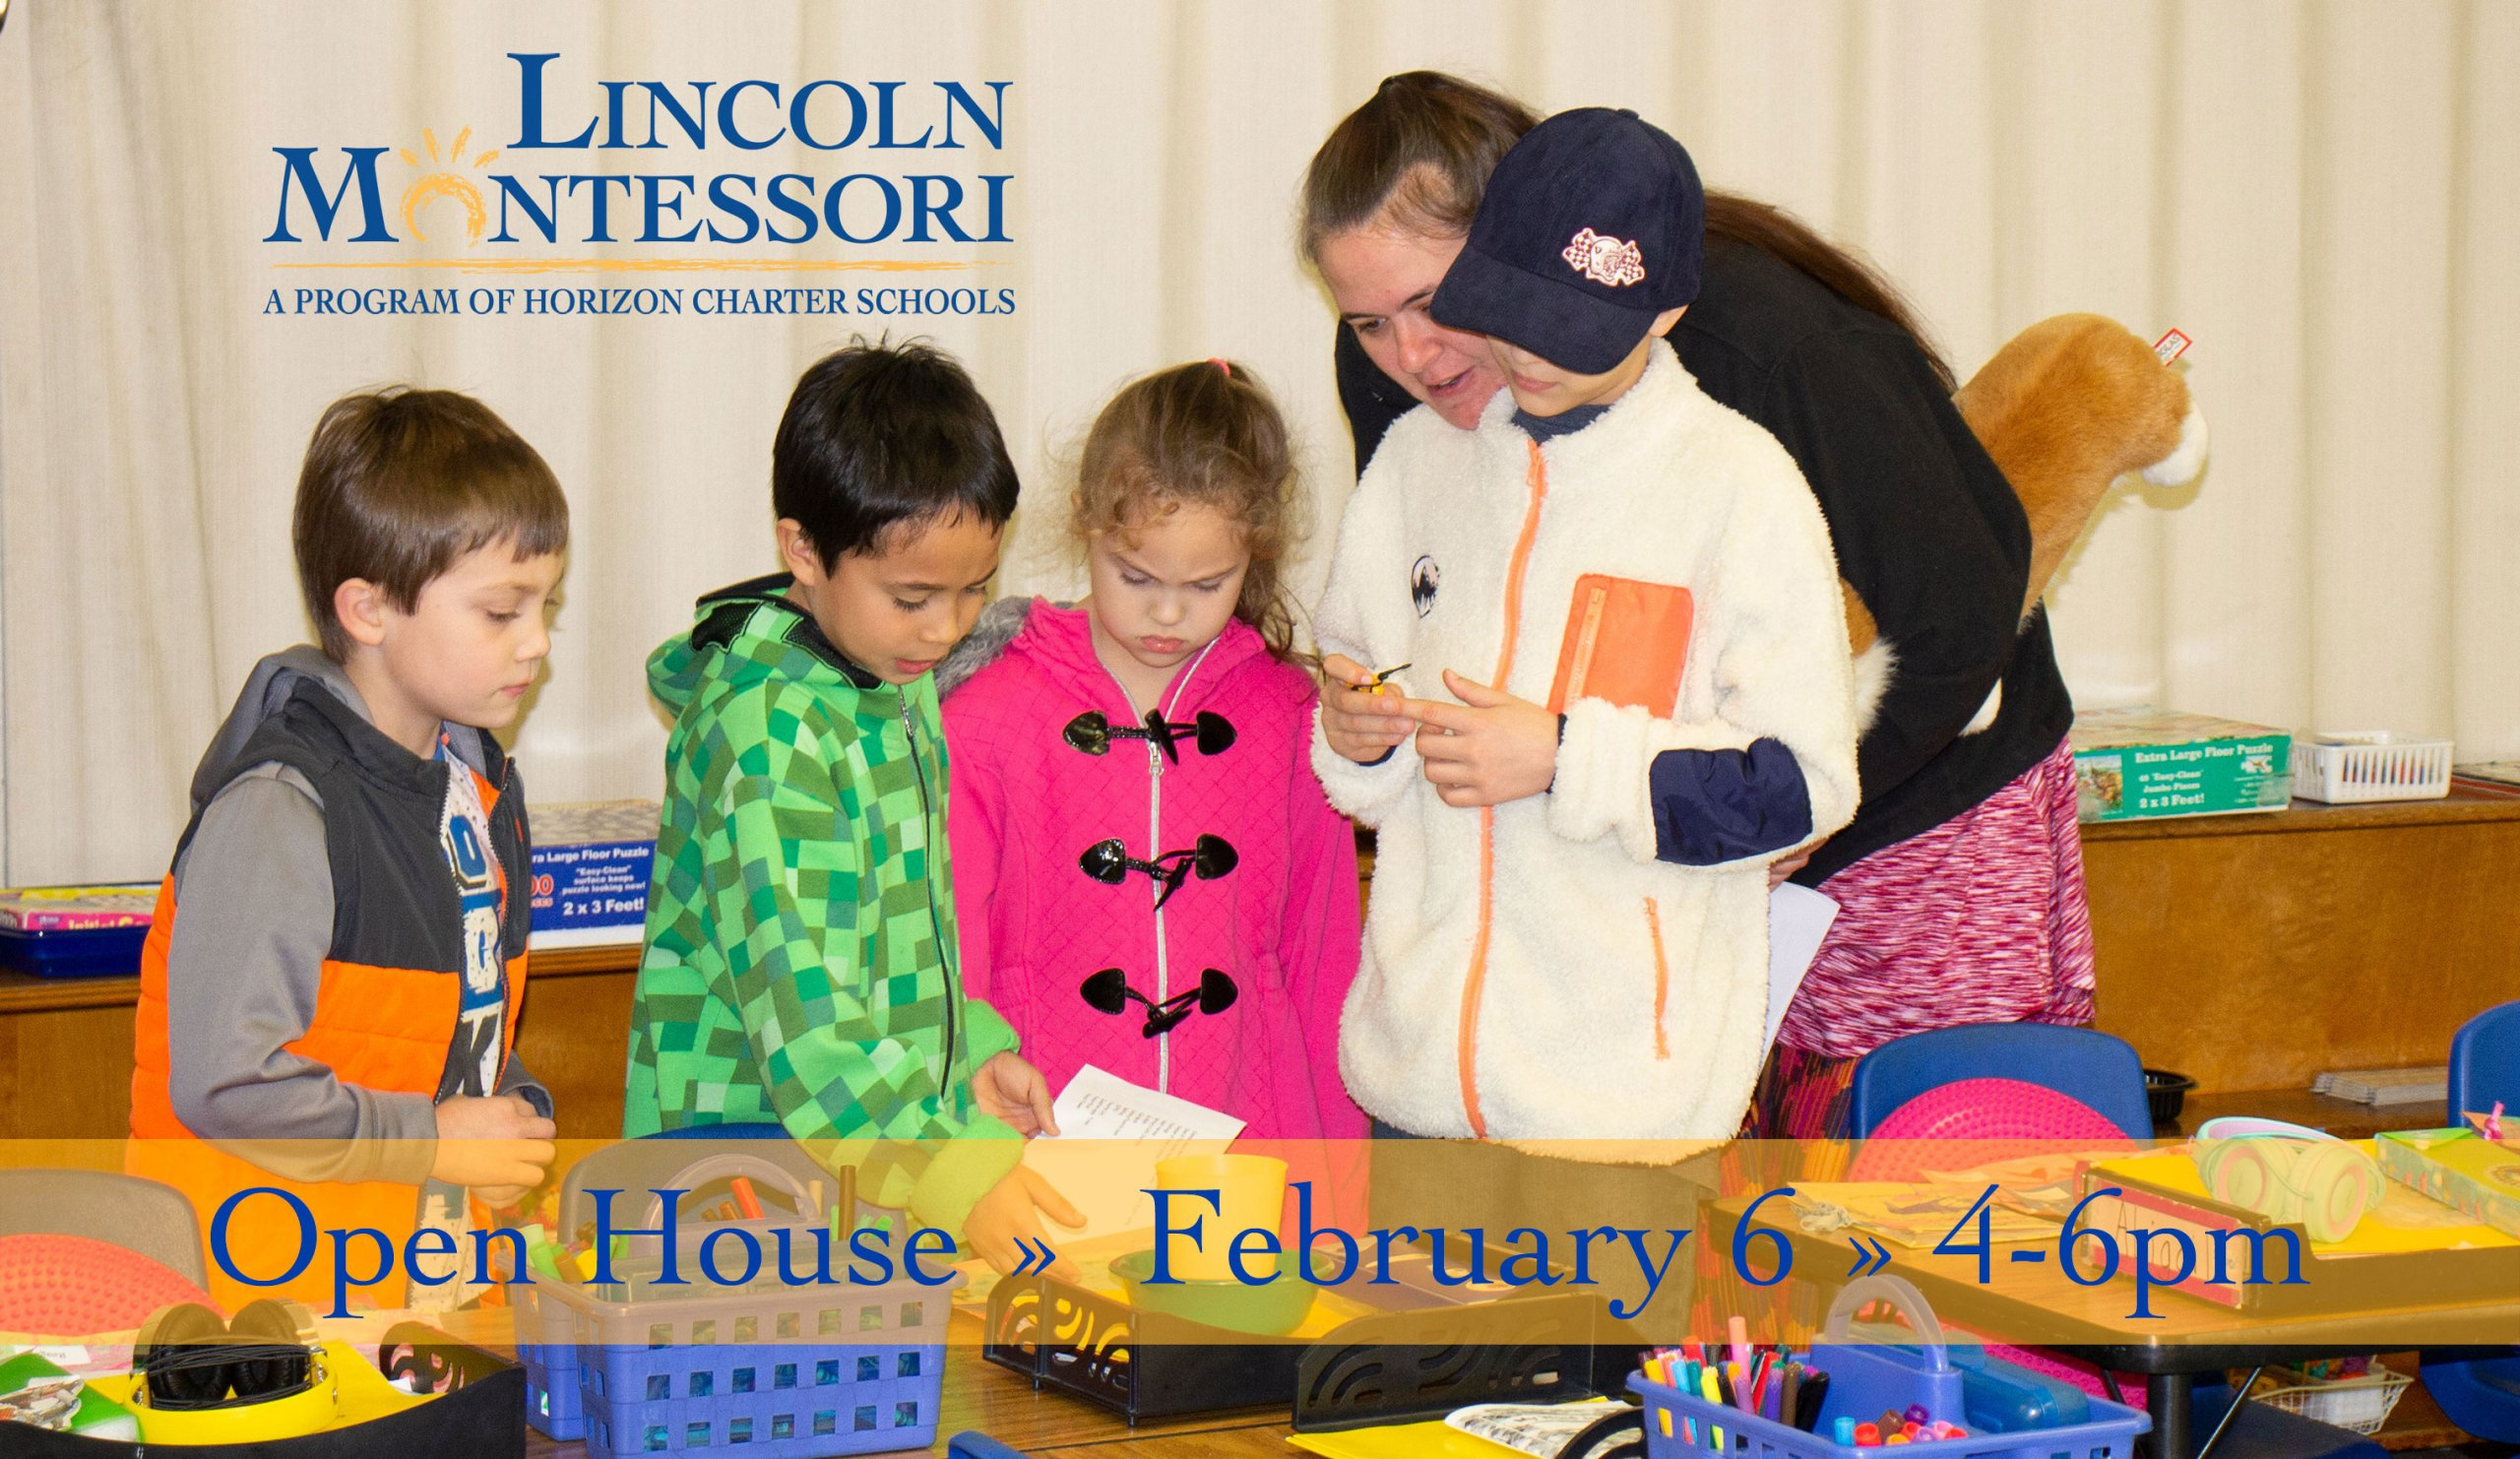 Lincoln Montessori Open House February 6, 2020